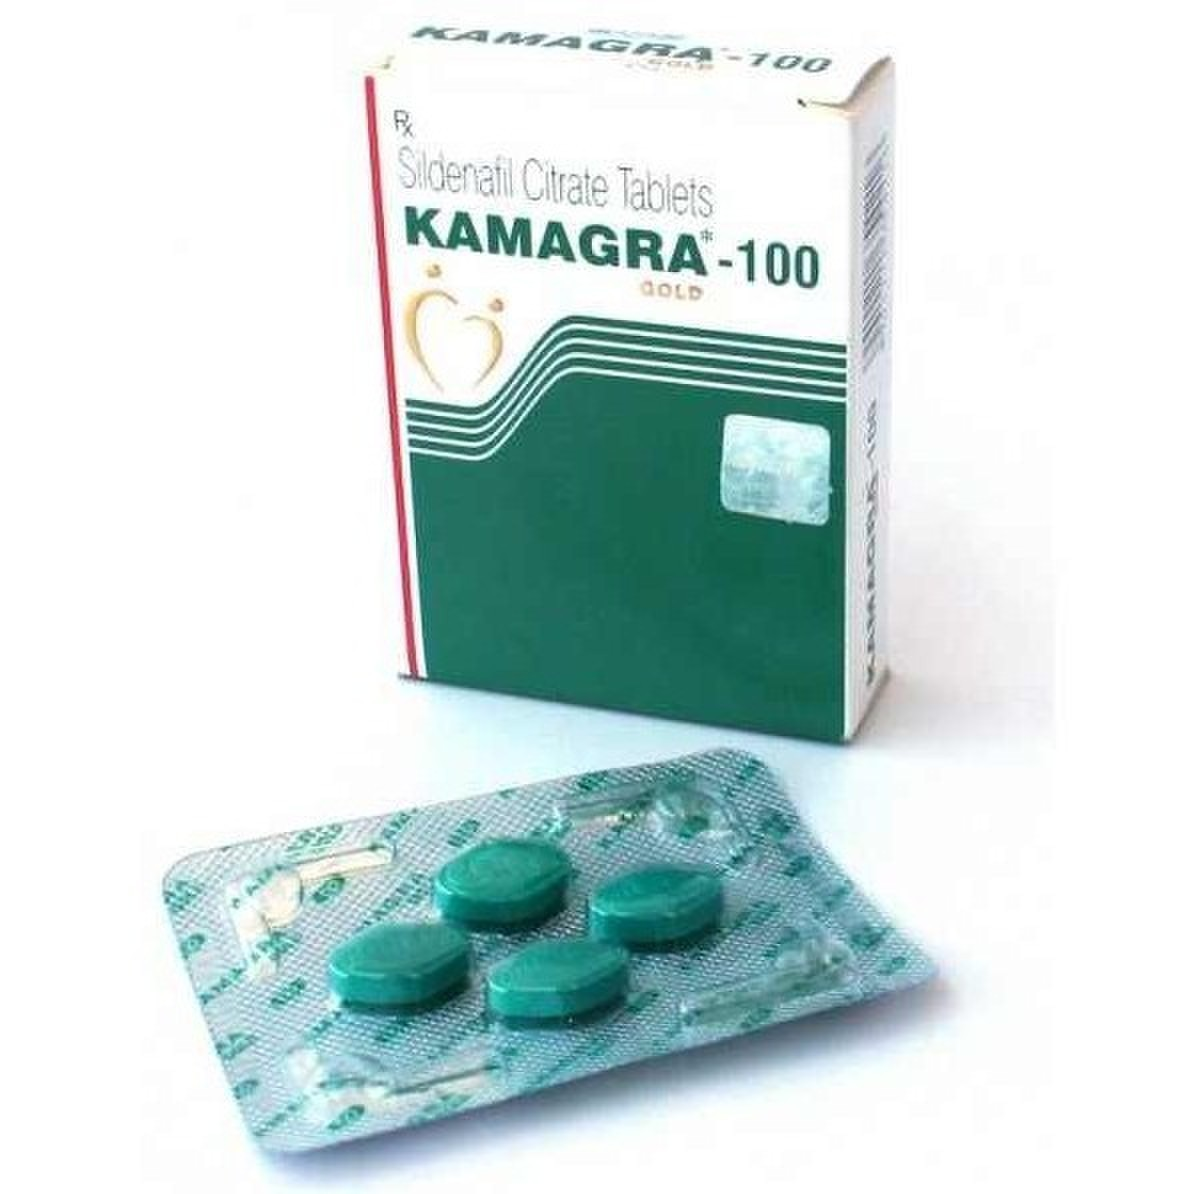 Kamagra Export Gold 100 mg R